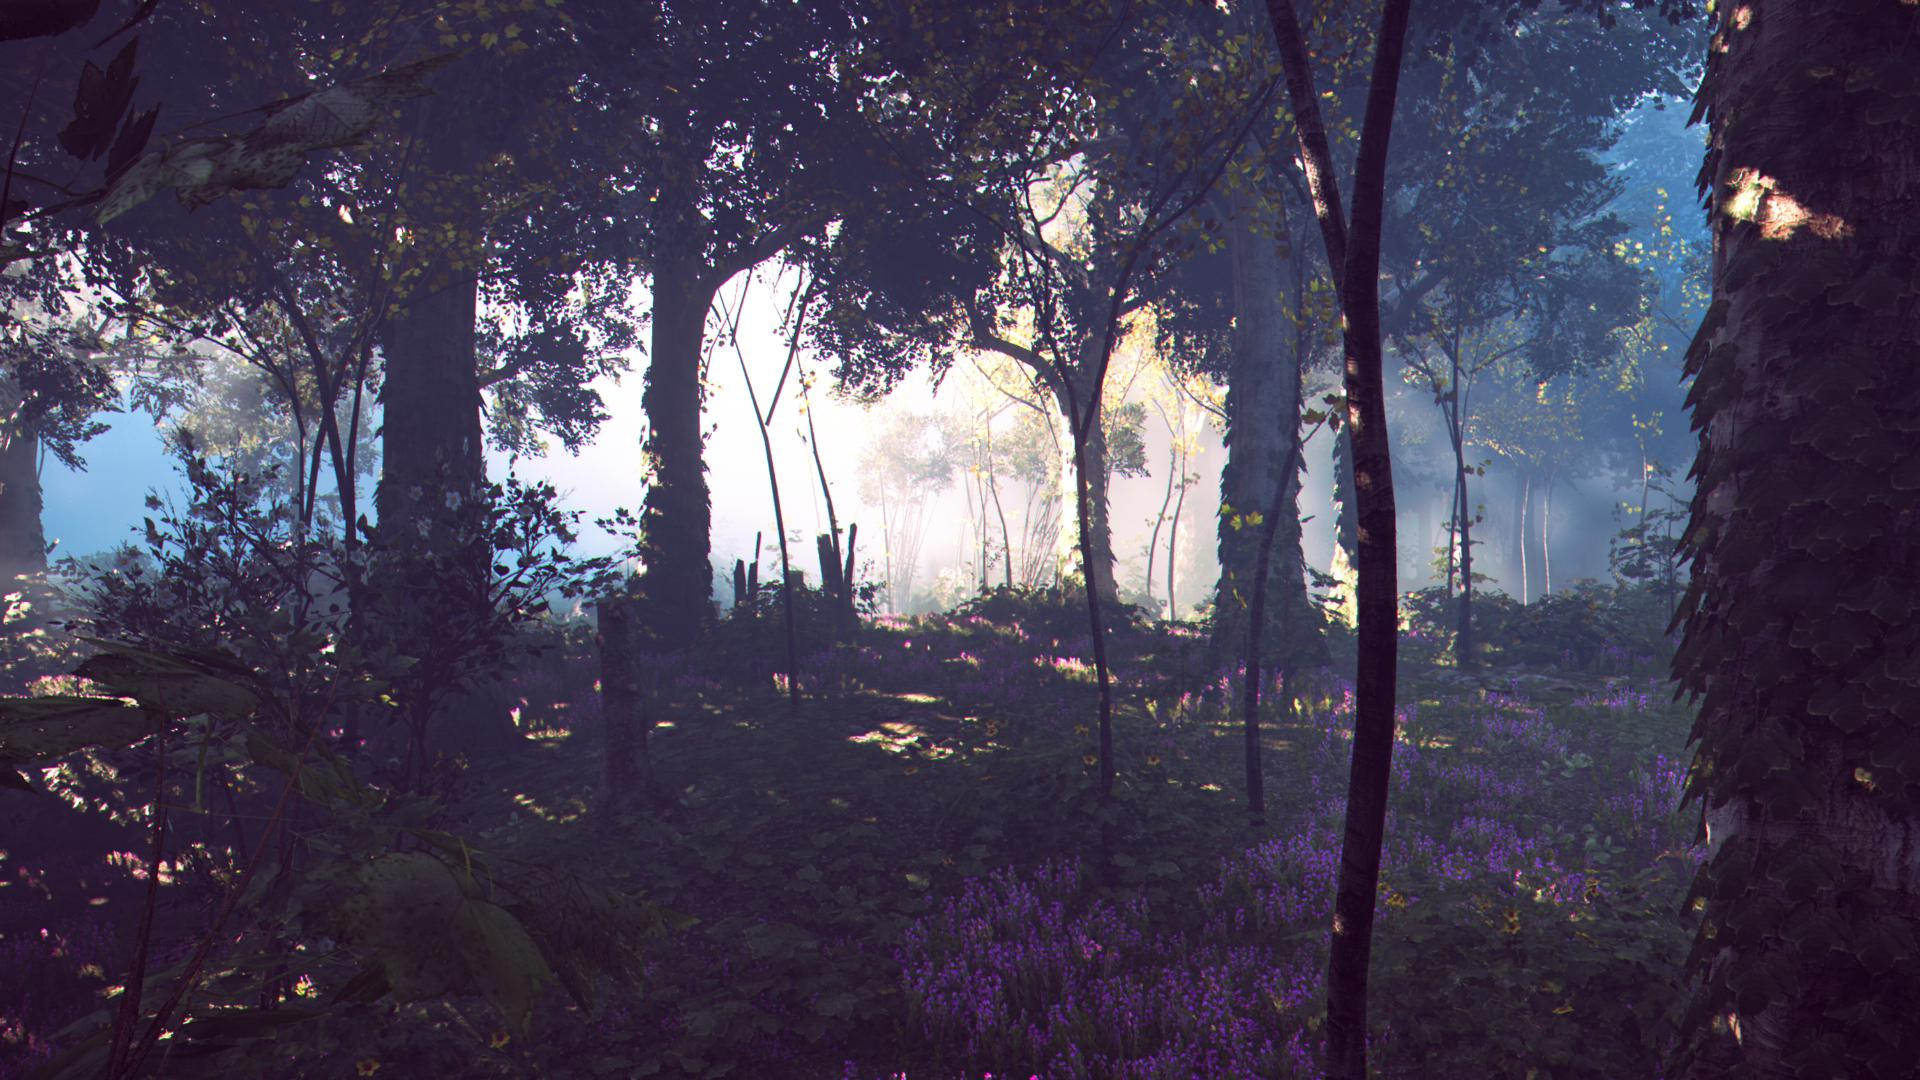 A worryingly realistic picture of the in-game forest.